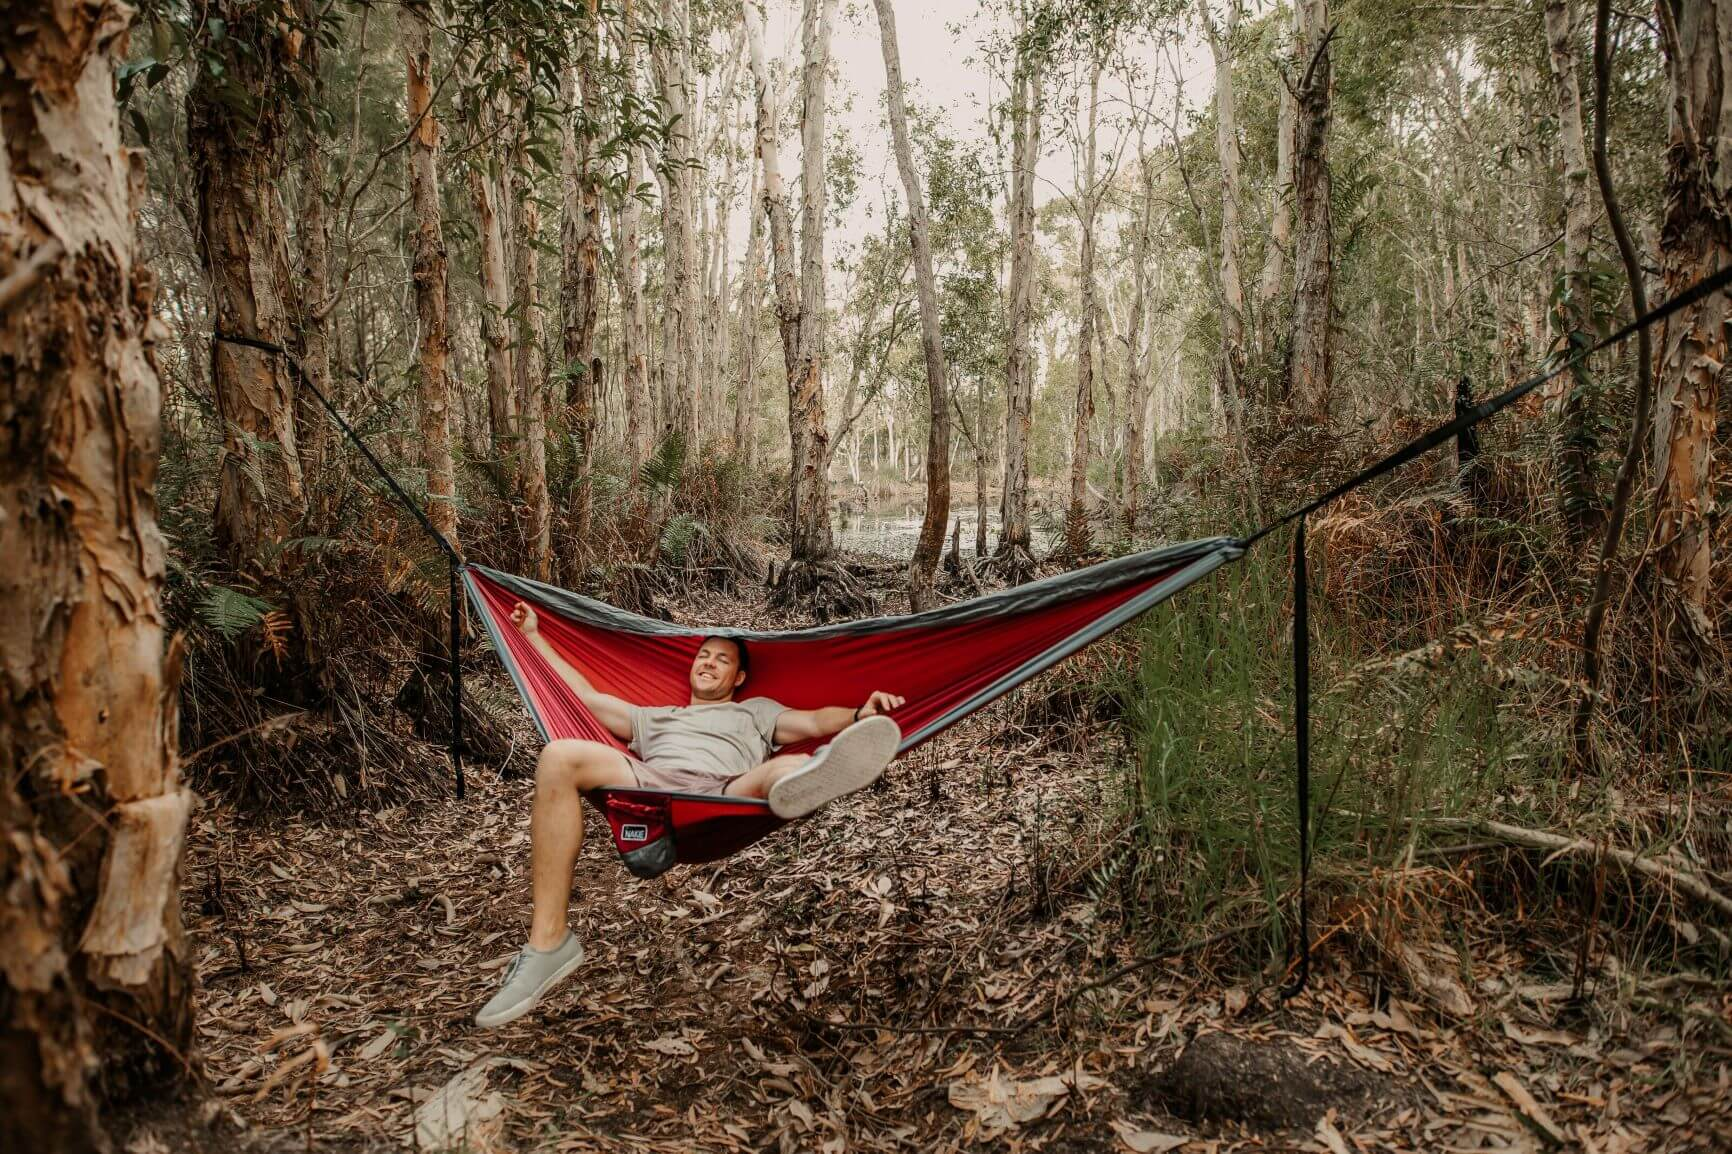 The worlds first recycled hammock